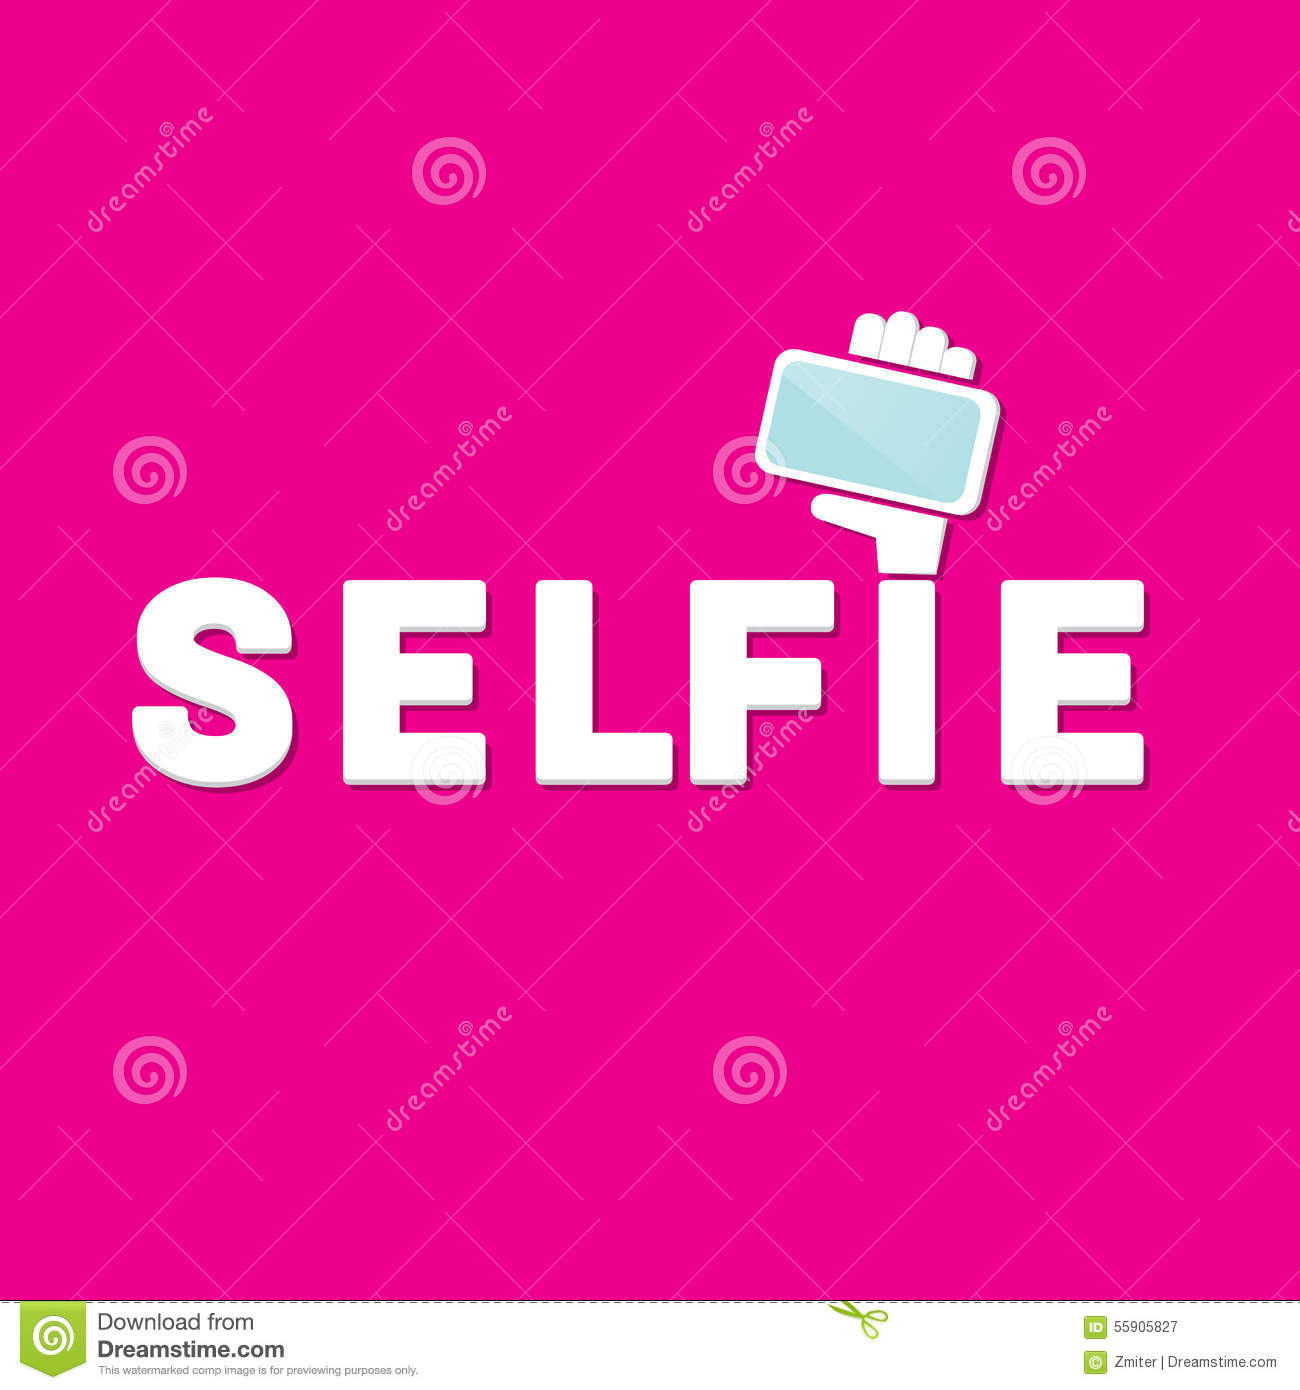 Taking Selfie Photo On Smart Phone Concept Icon Stock Vector - Image ...